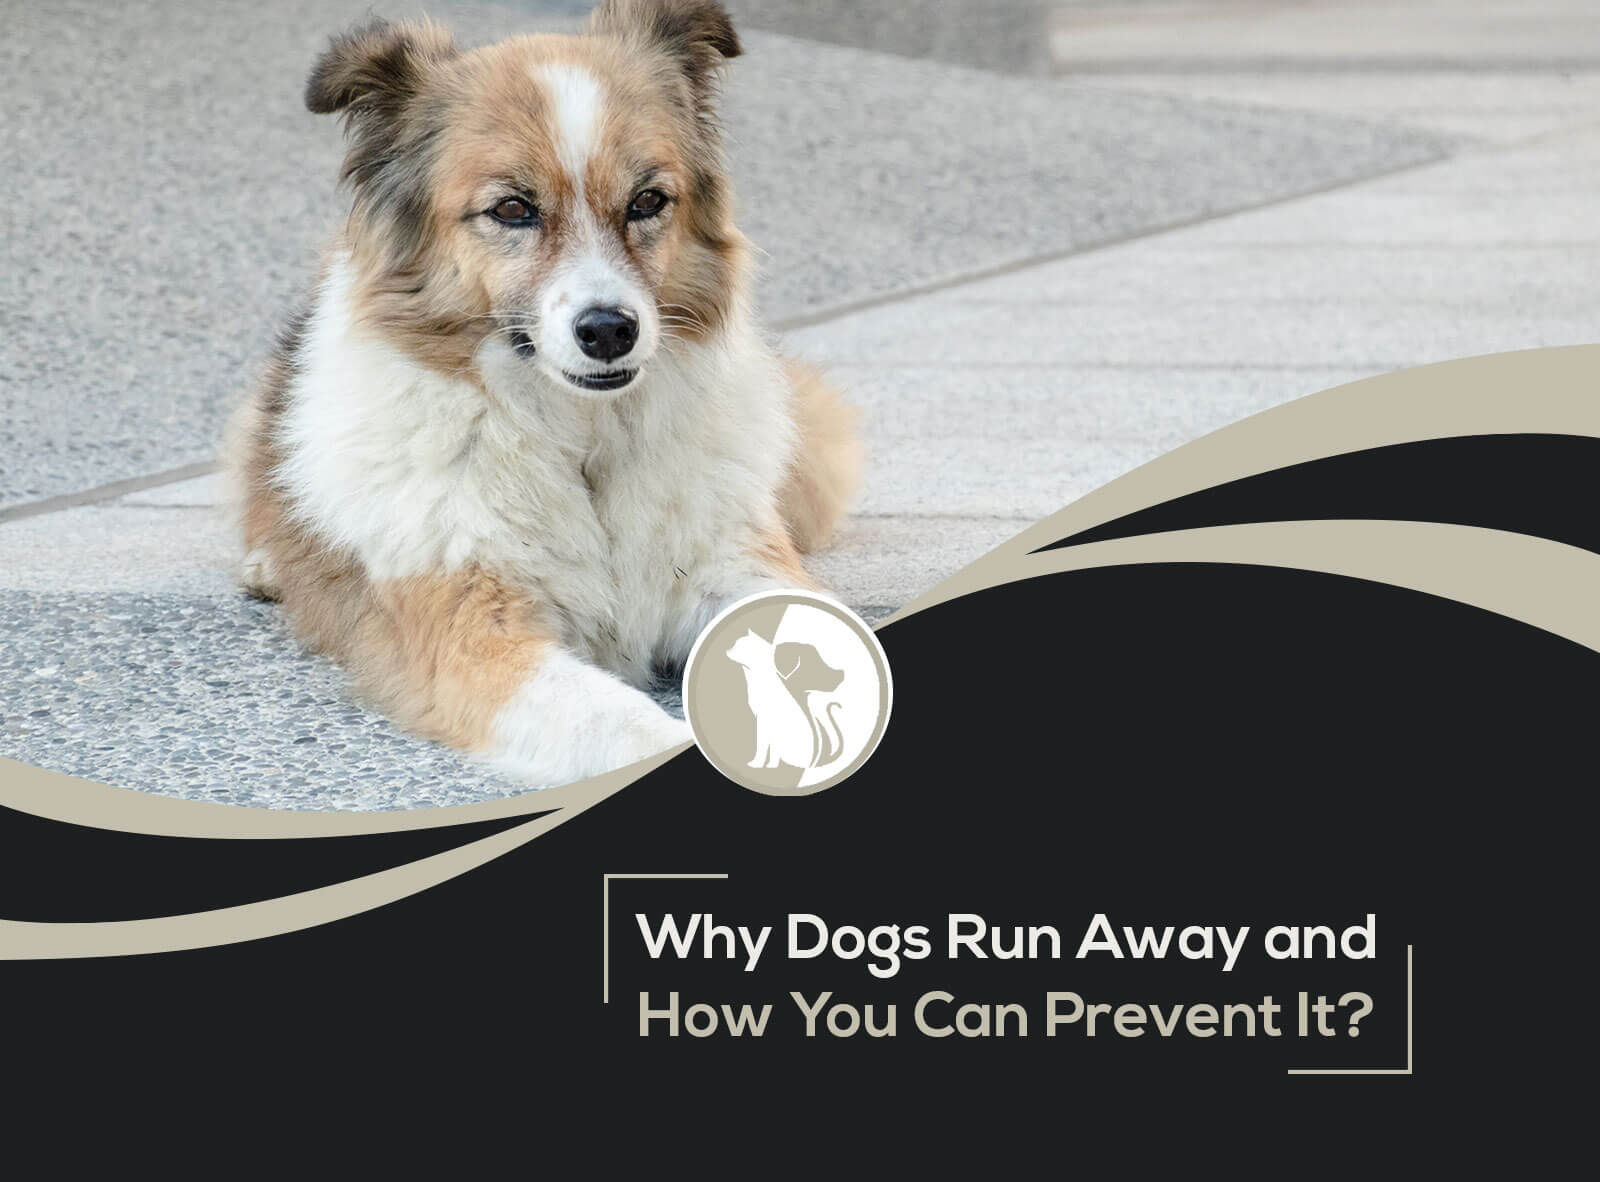 Why Do Dogs Run Away and How You Can Prevent It?